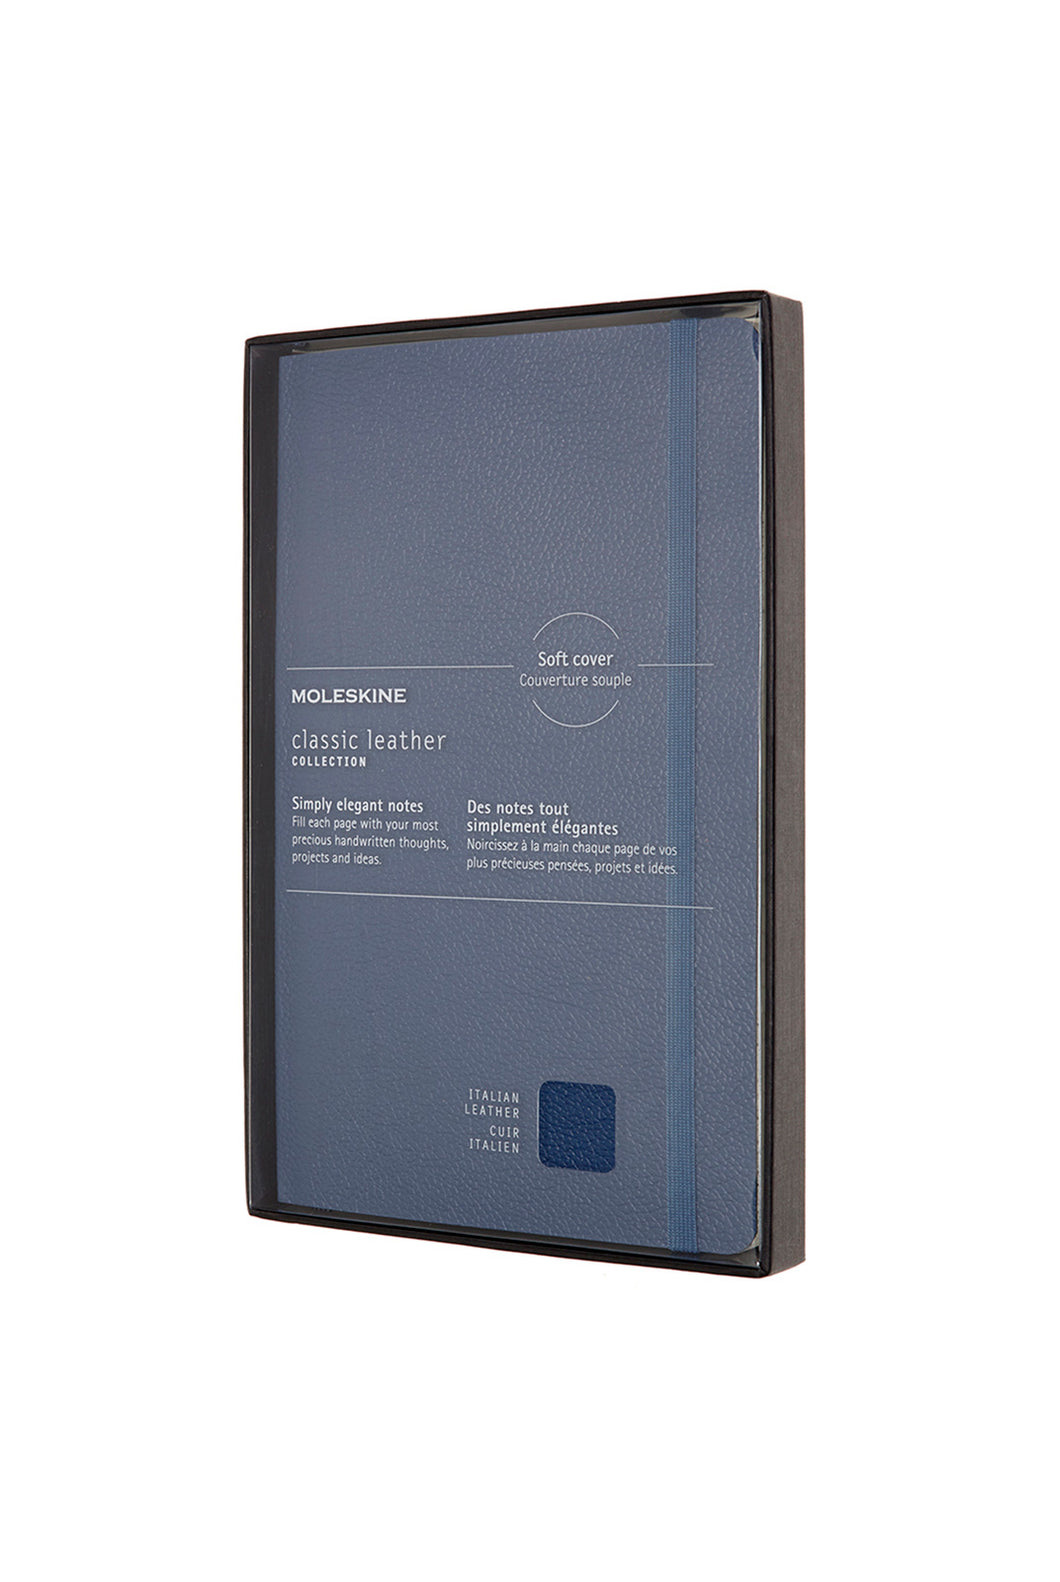 Moleskine - Limited Edition Classic Leather Soft Cover Notebook - Ruled - Large - Forget Me Not Blue